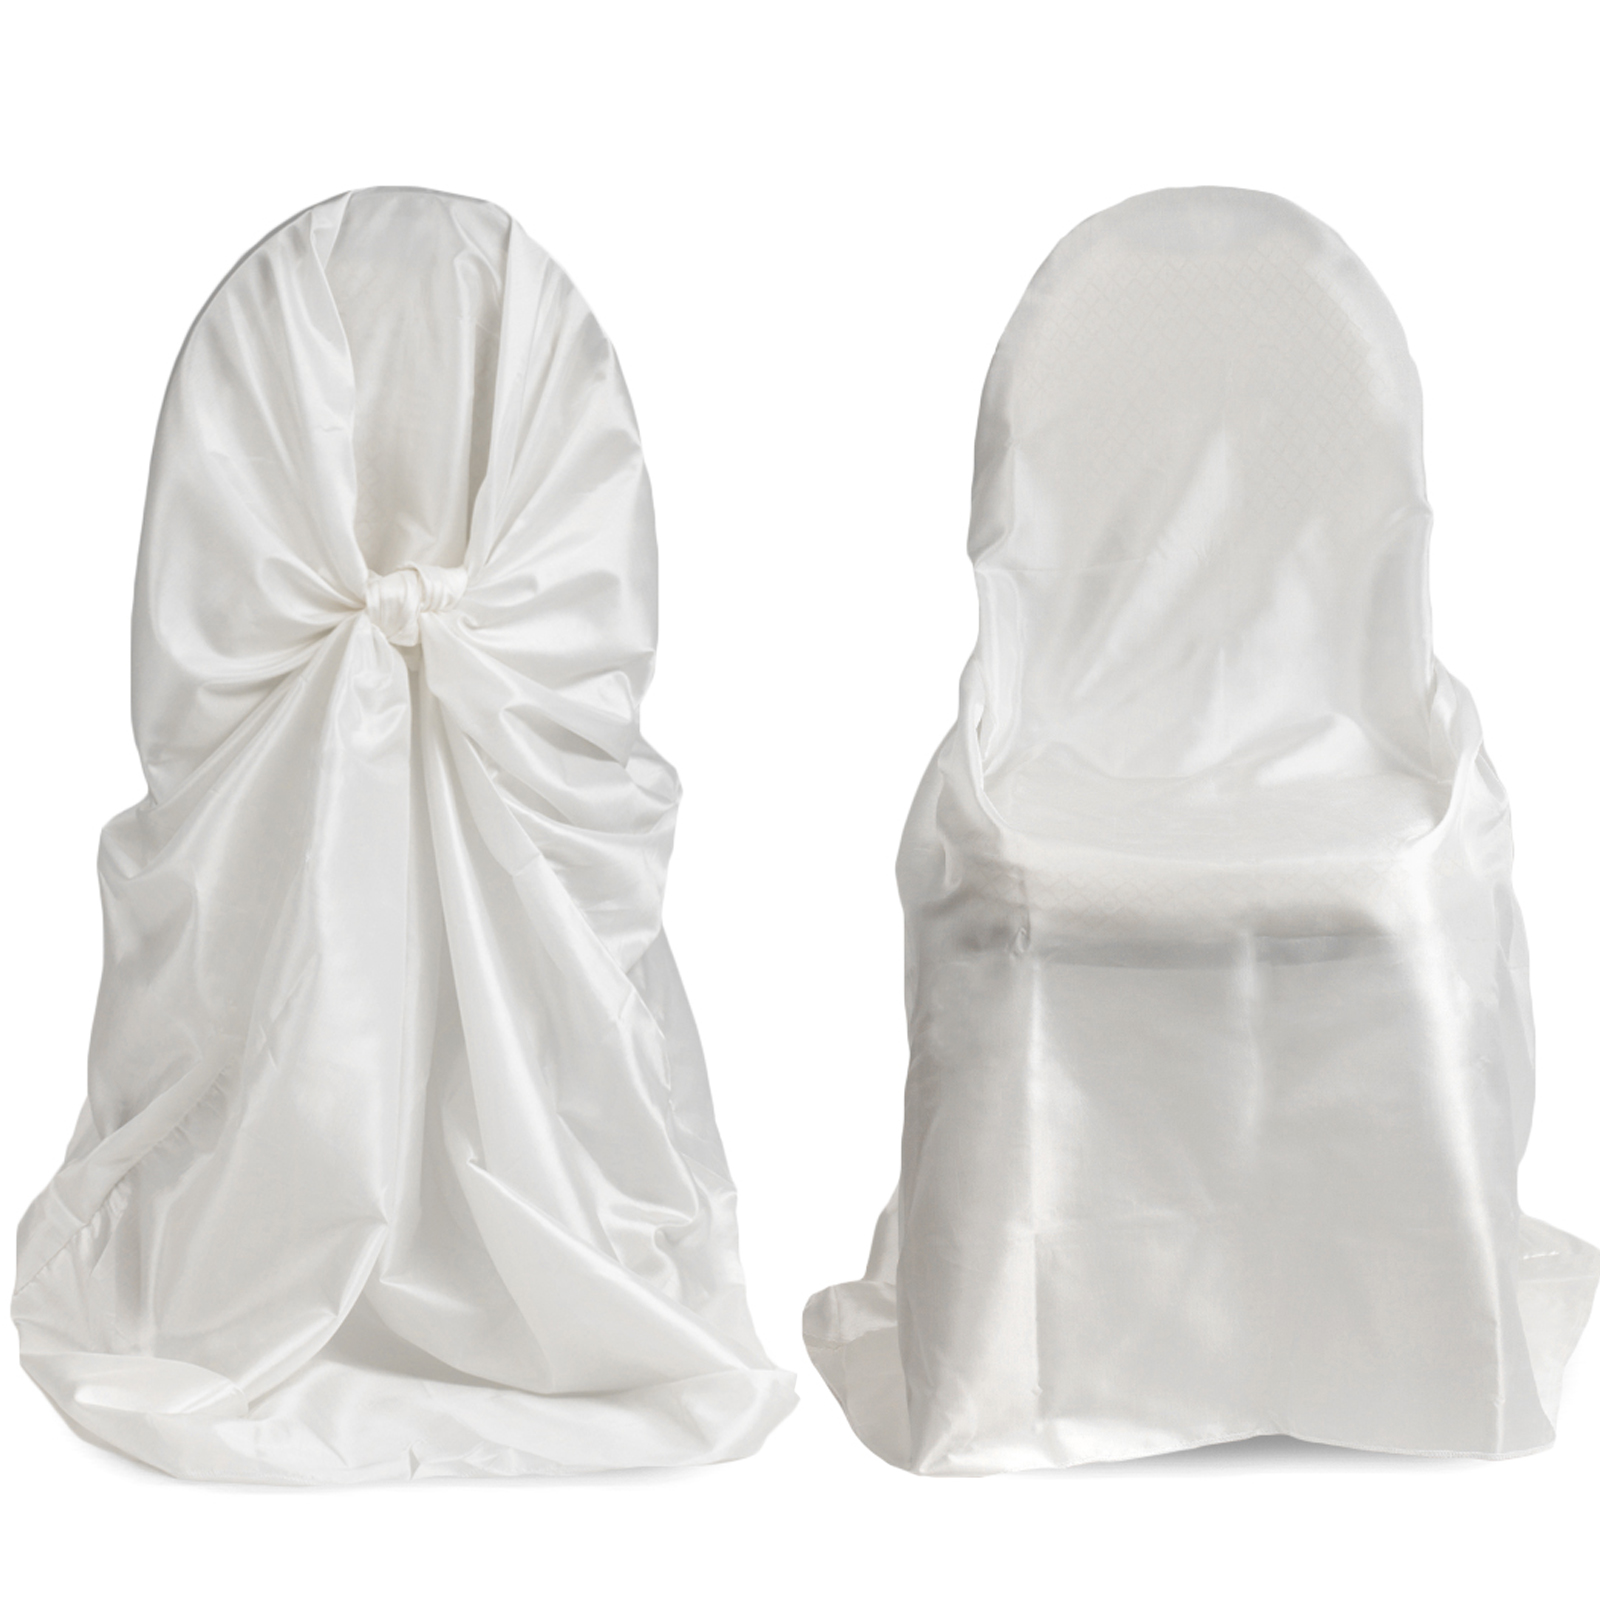 Popular White Chair Covers for Weddings Bows Buy Cheap White Chair